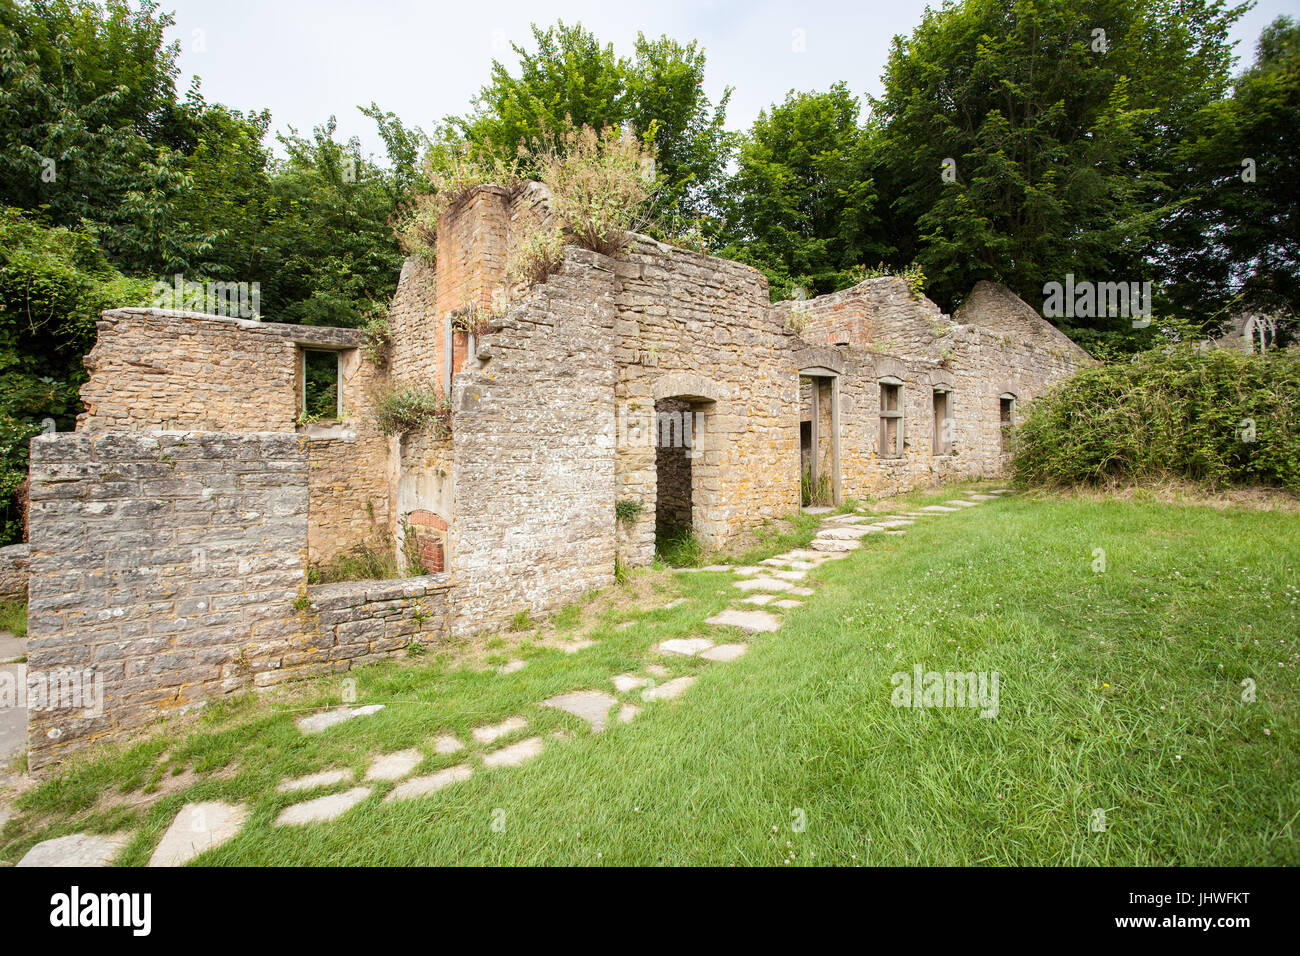 Tyneham Village, near Wareham, Dorset. Part of the Purbecks. Evacuated in 1943 and remains deserted. Church and Stock Photo